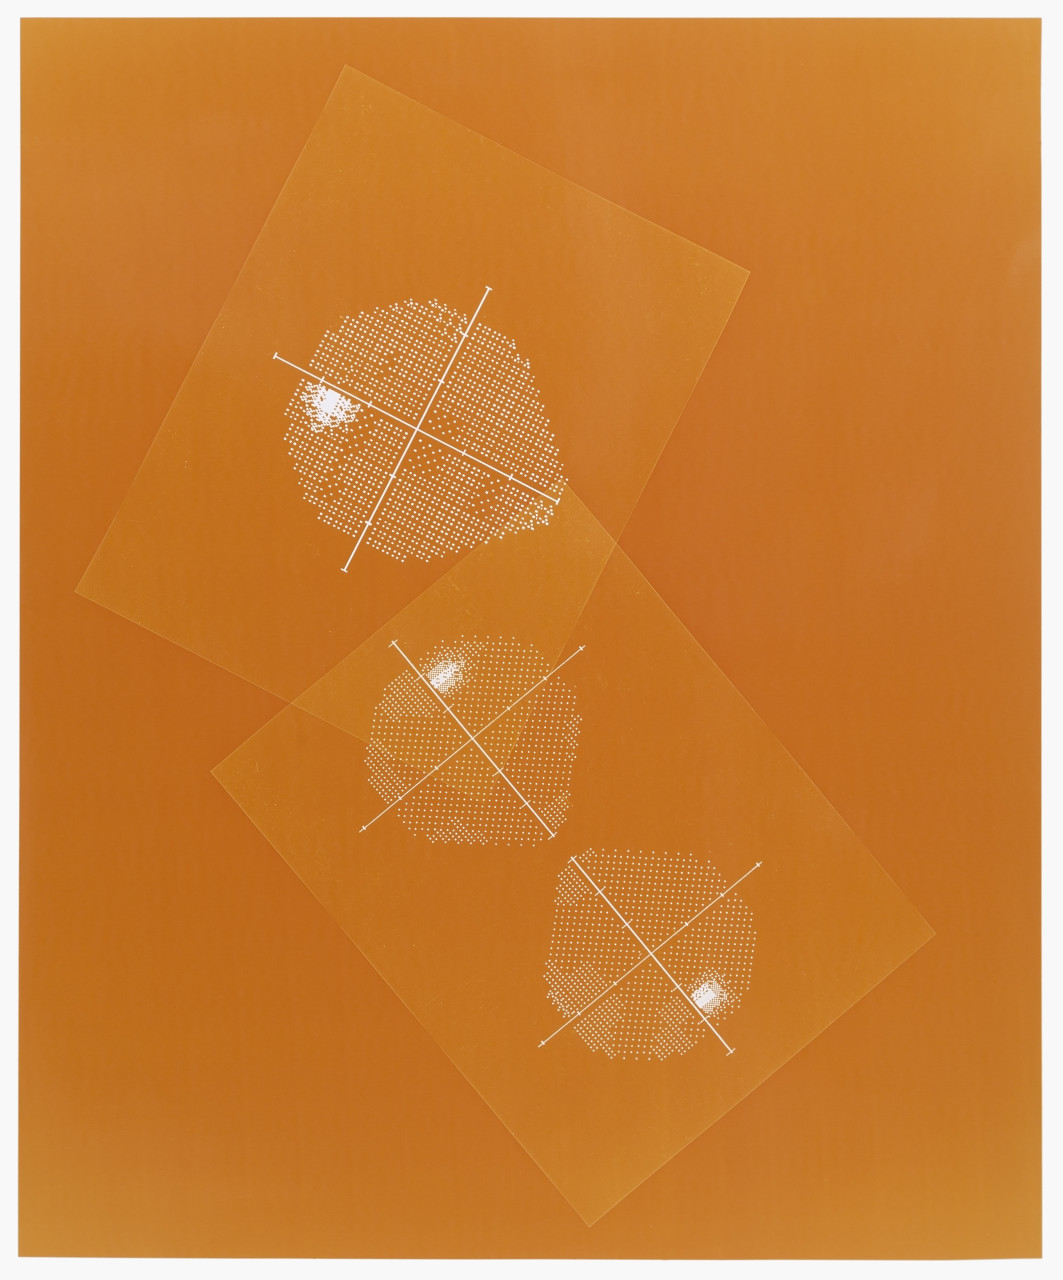 Visual field (Orange)